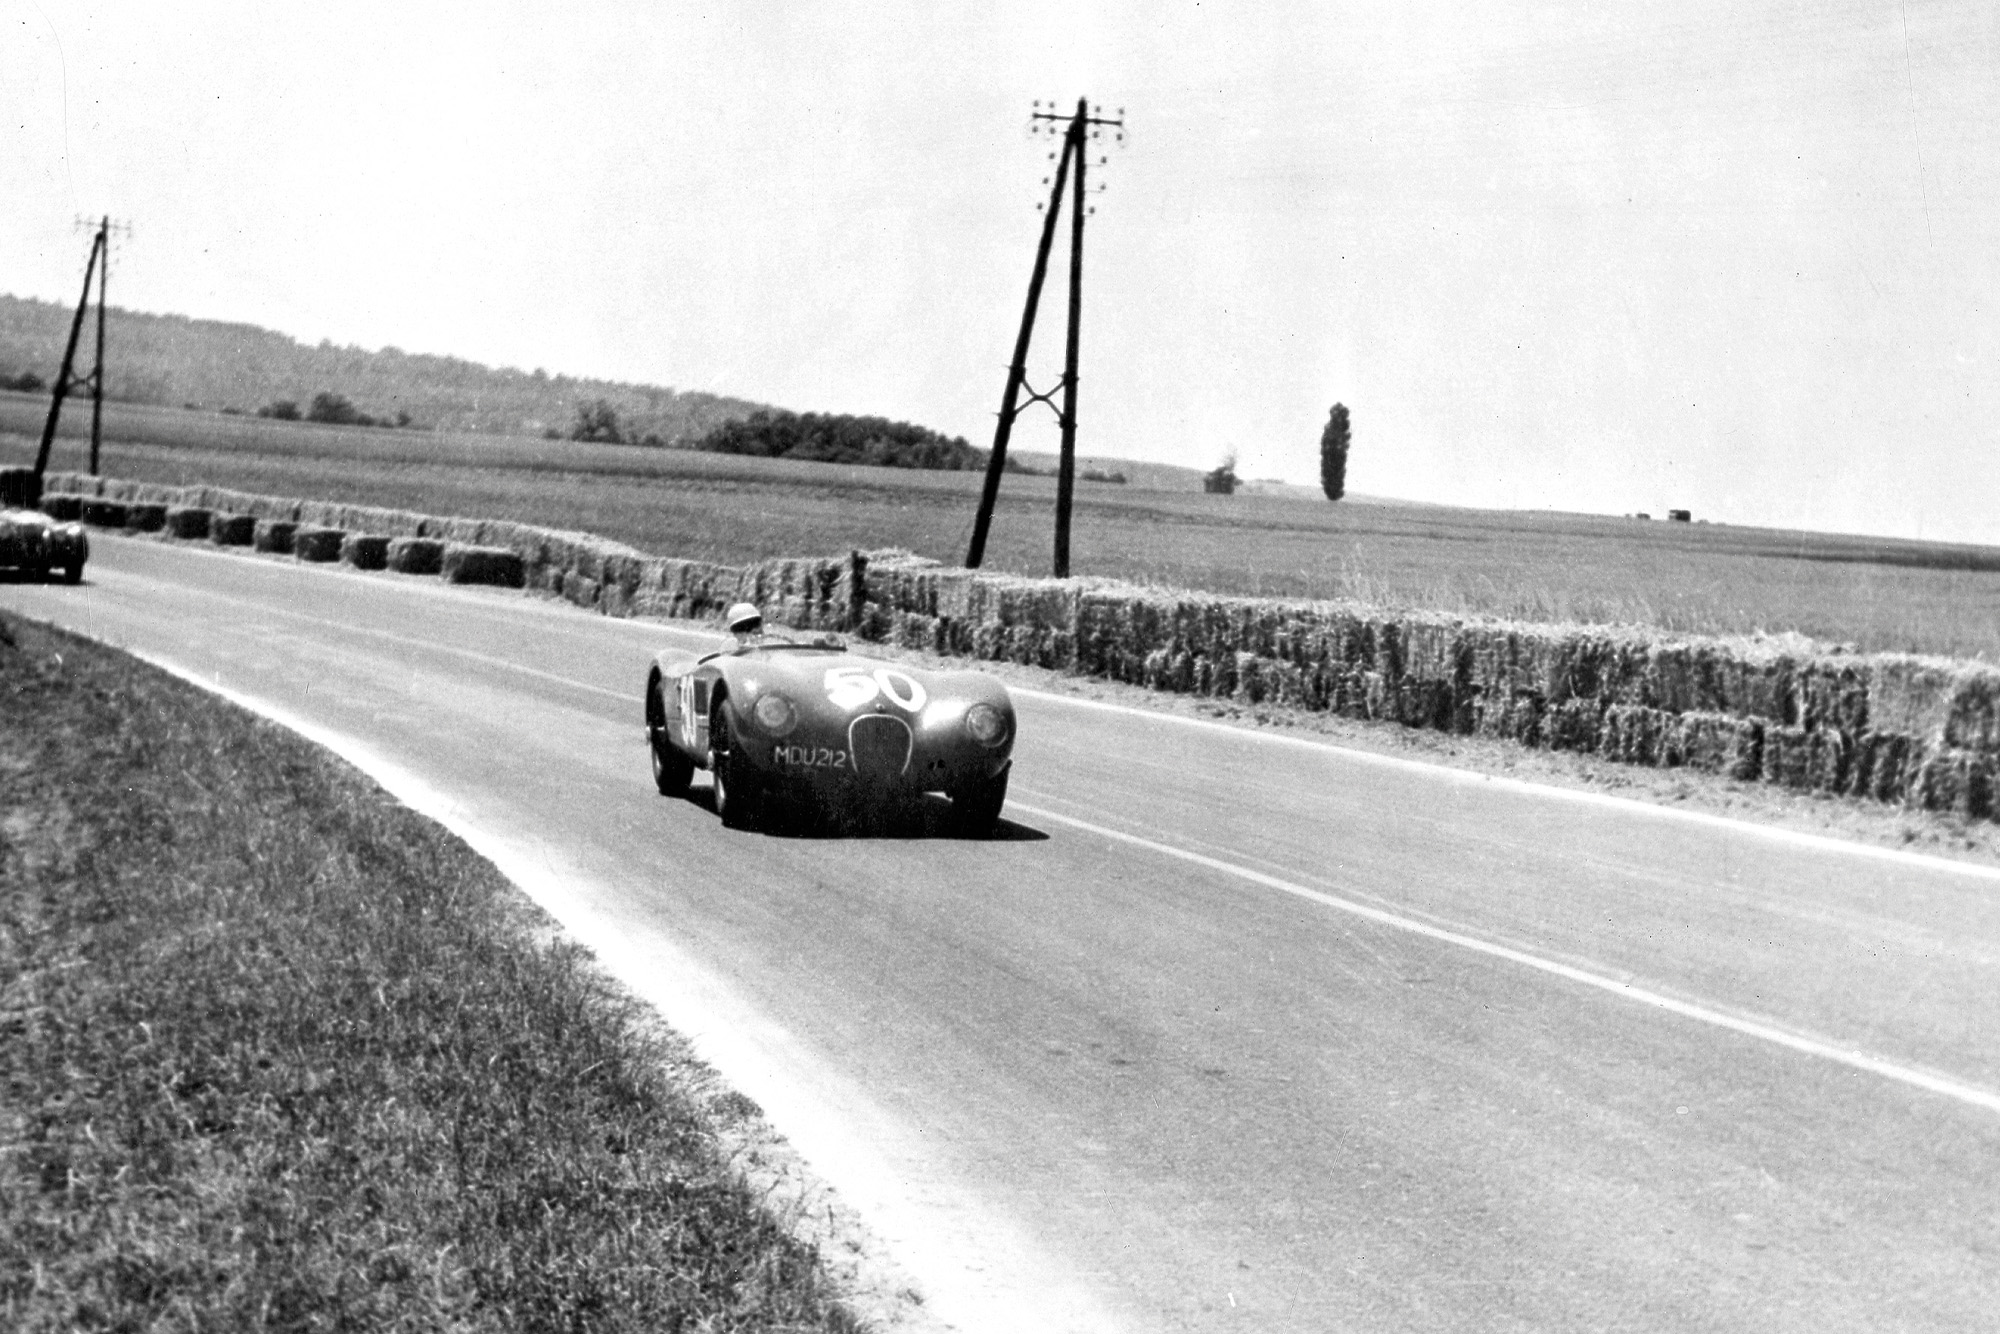 Stirling Moss during the 1952 Reims Grand Prix